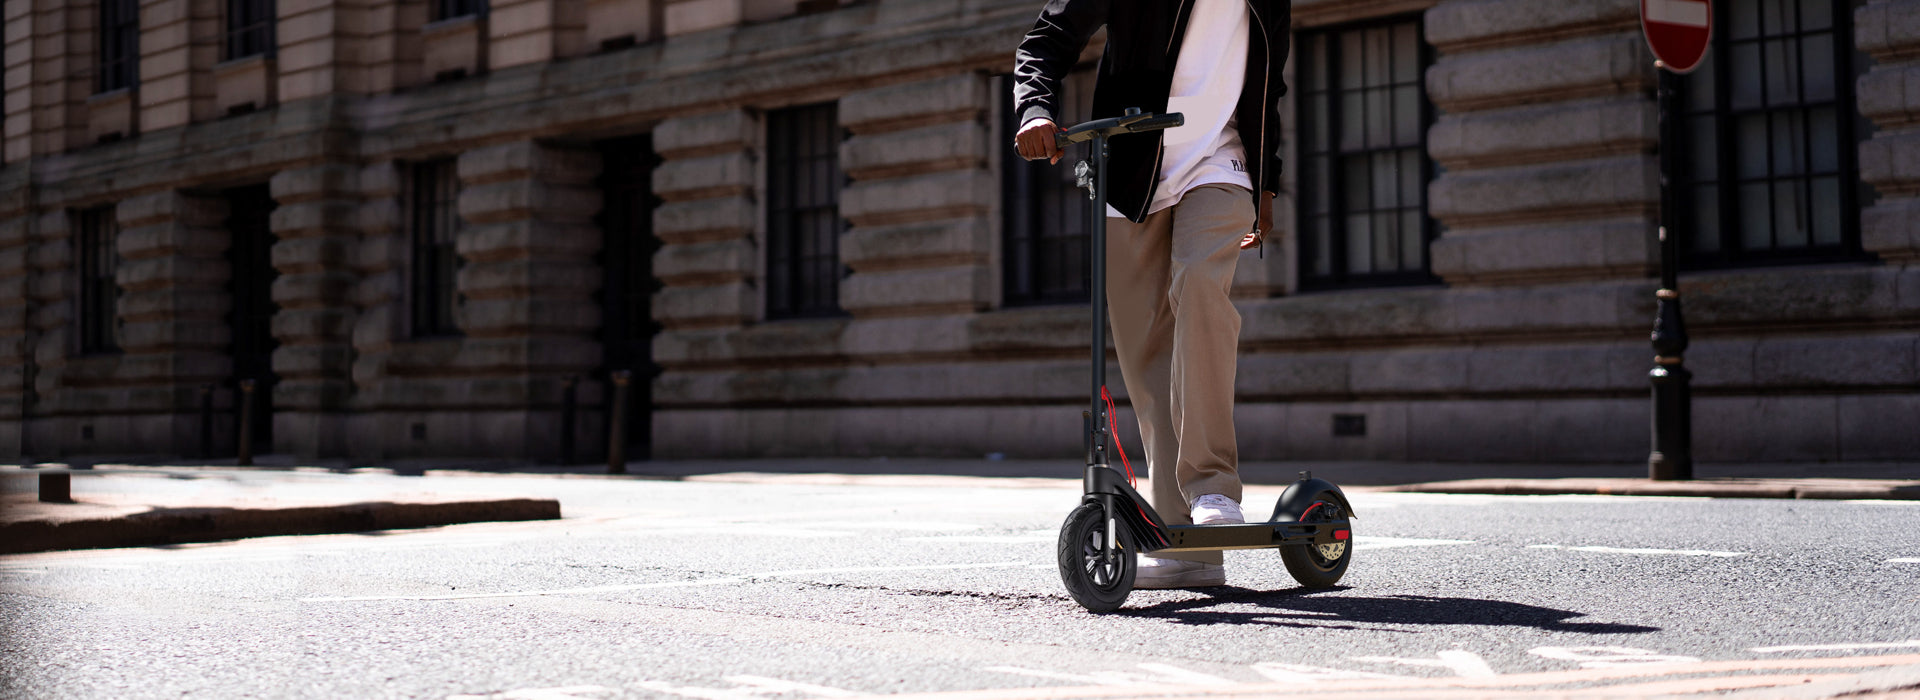 Turboant M10 Folding Electric Scooter for adult daily commute